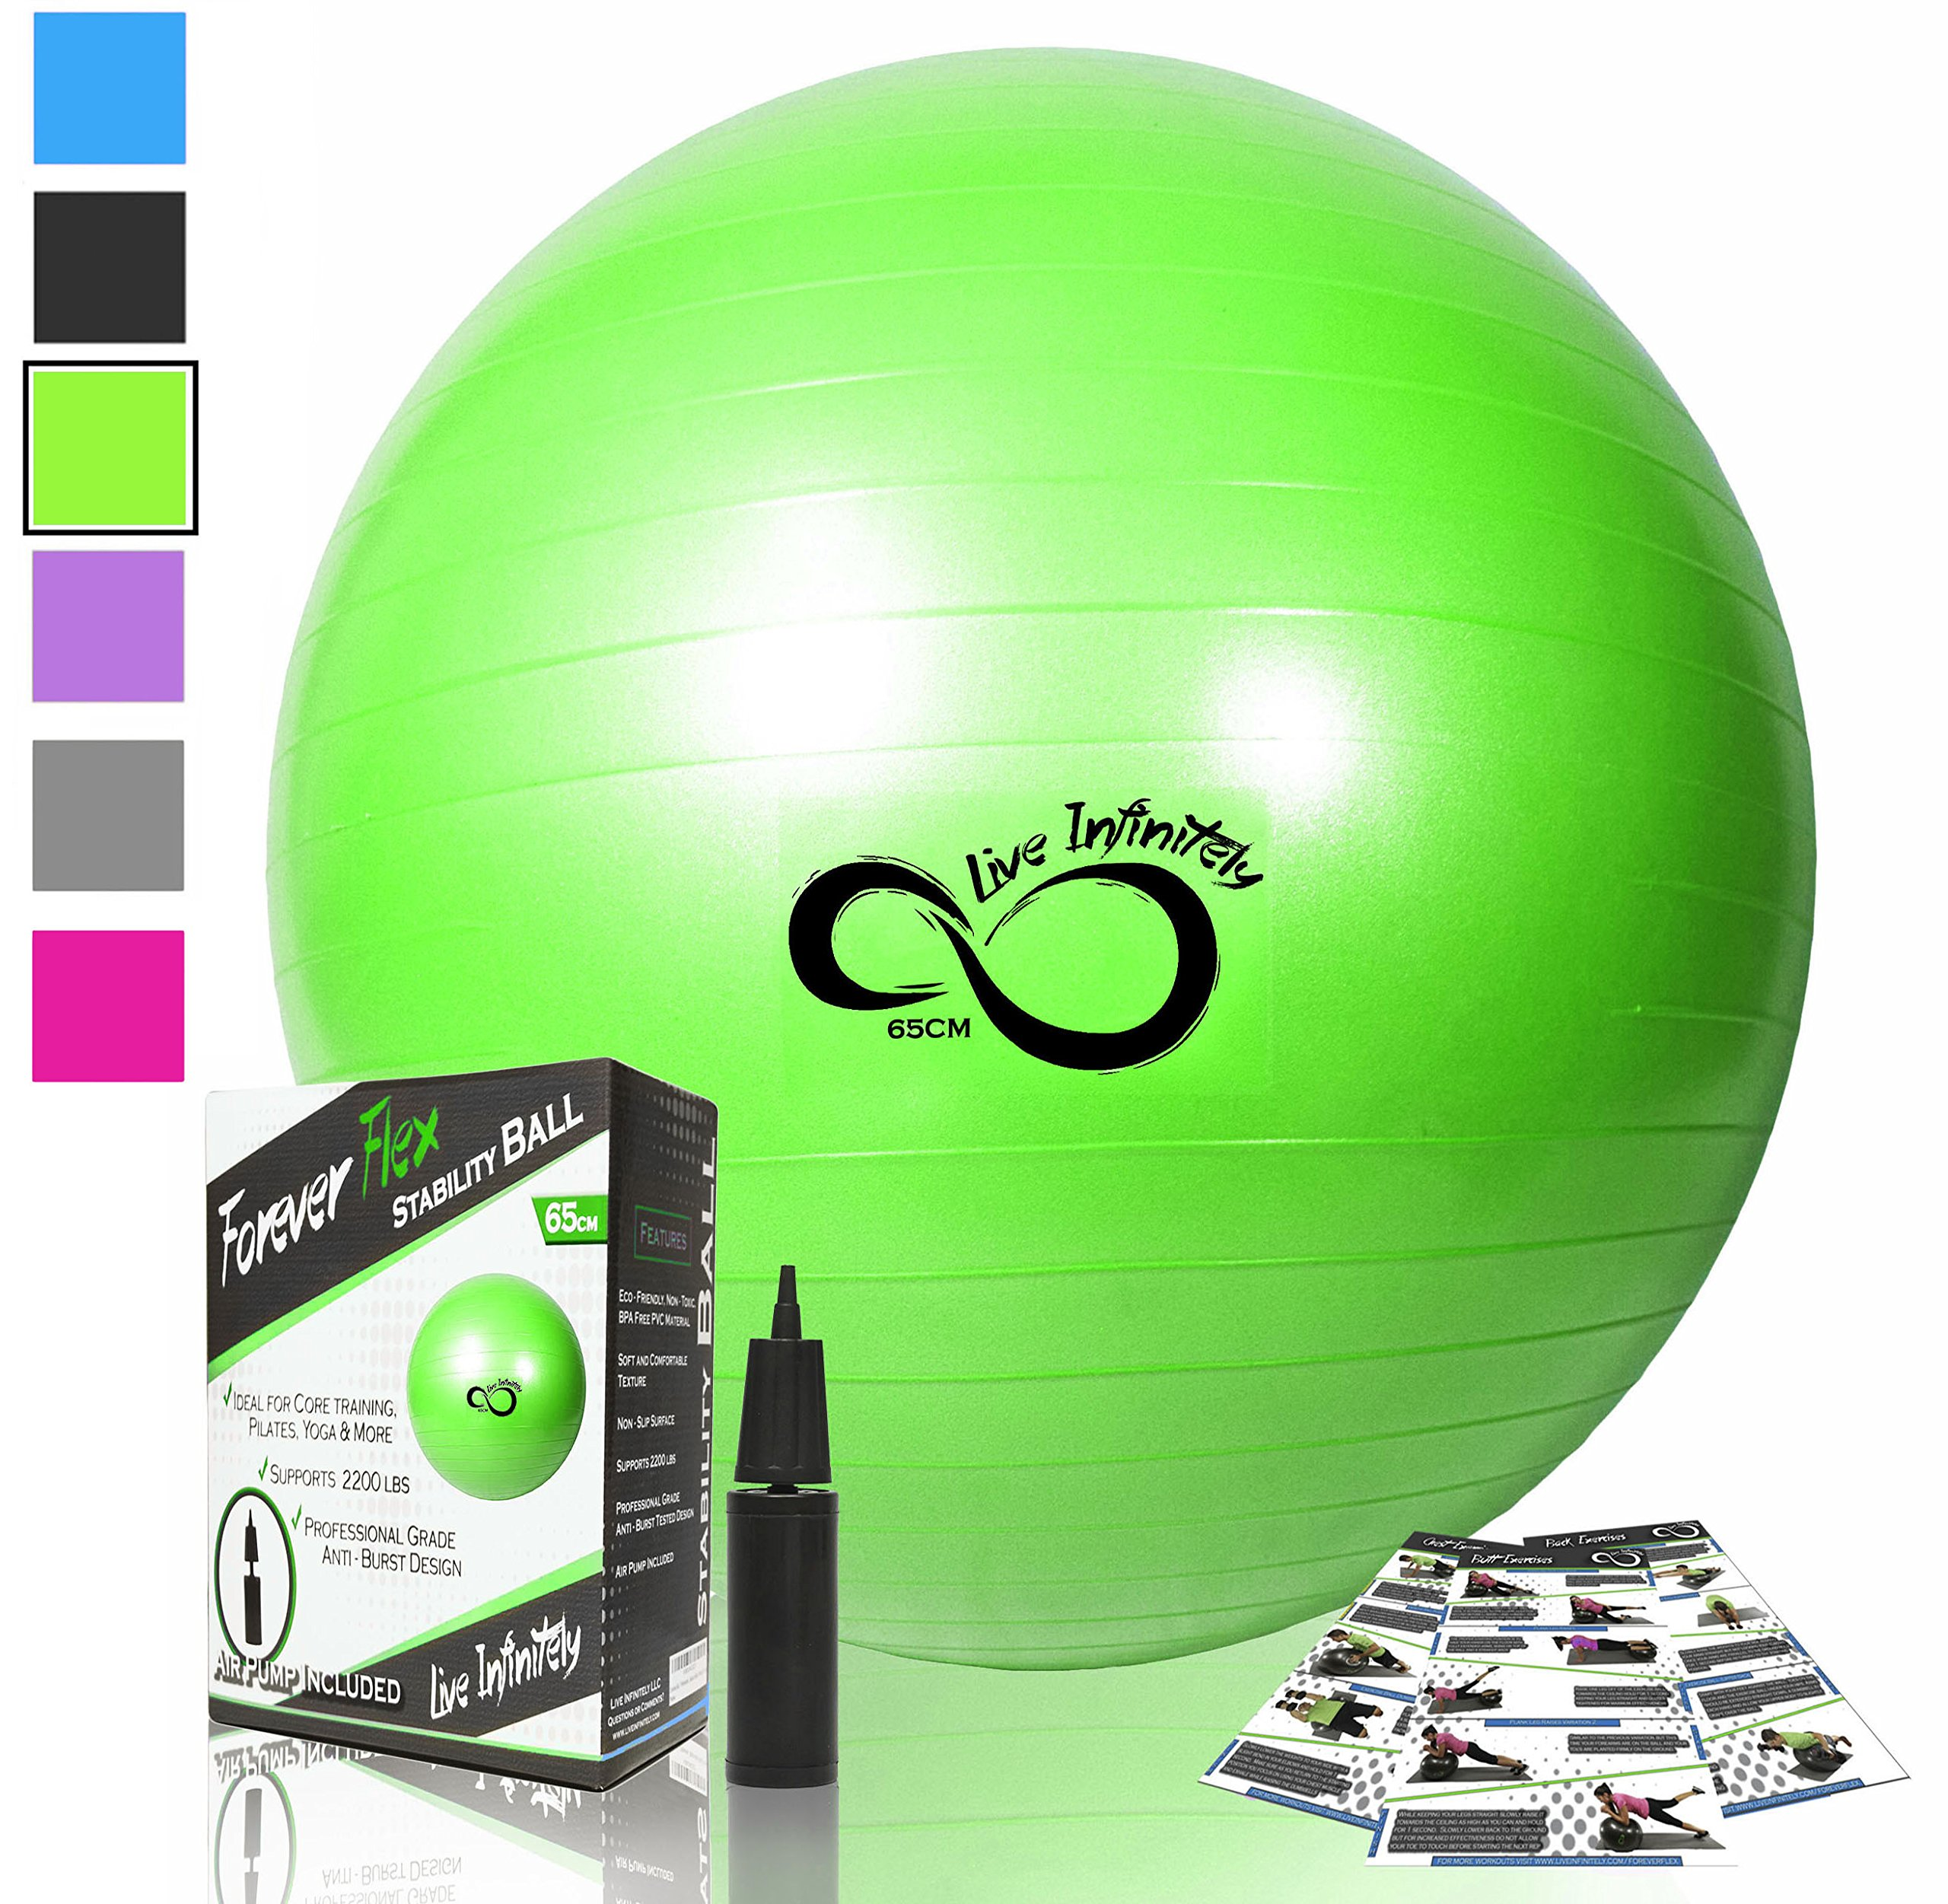 Live Infinitely Exercise Ball (55cm-95cm) Extra Thick Professional Grade Balance & Stability Ball- Anti Burst Tested Supports 2200lbs- Includes Hand Pump & Workout Guide Access Green 55cm